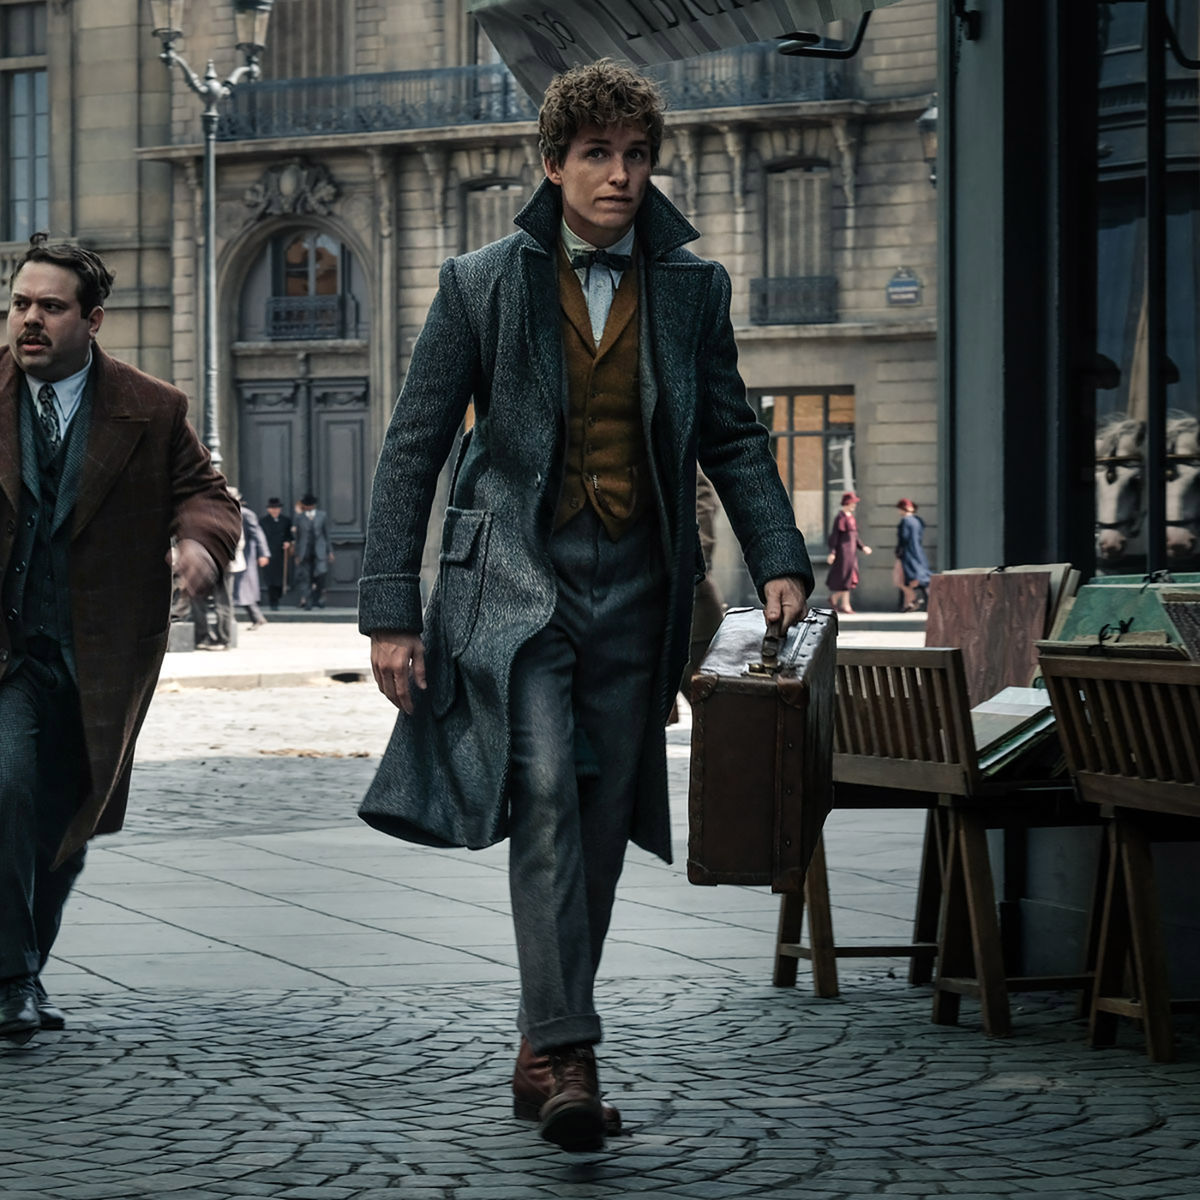 Harry Potter's World Gets Dark in Fantastic Beasts' SDCC Trailer